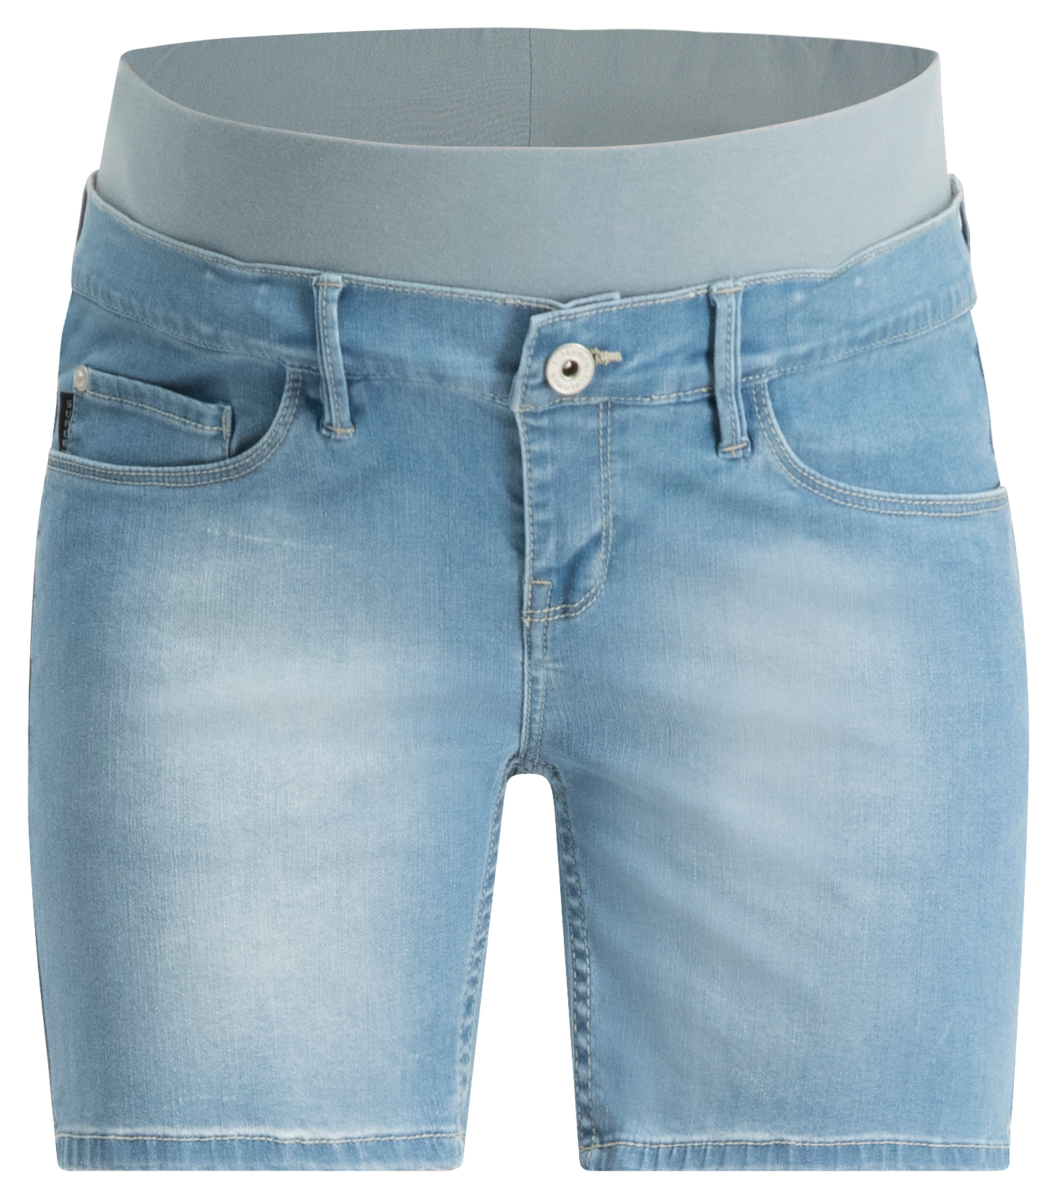 Jeans shorts Short Light Blue